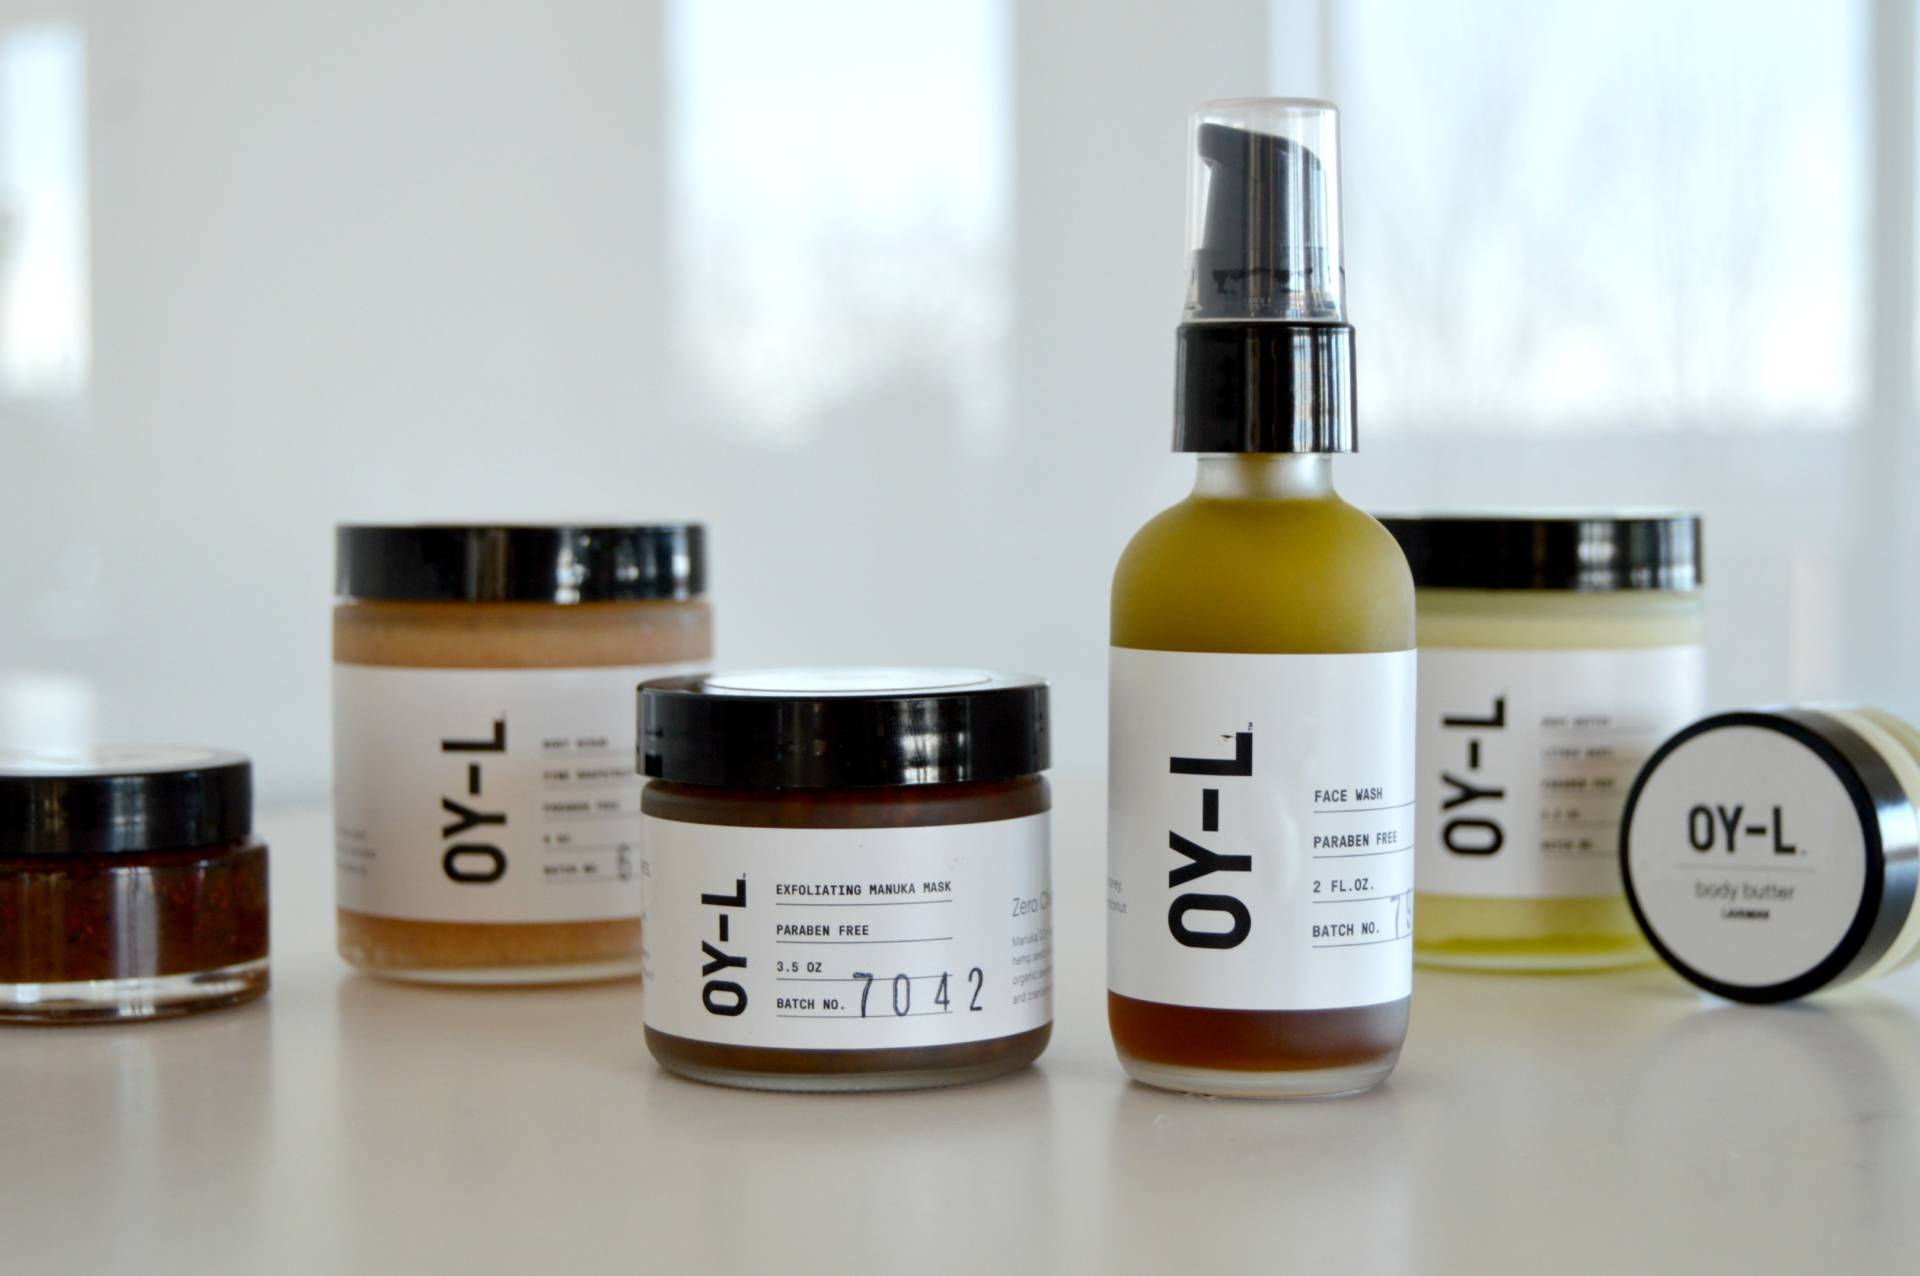 oy-l-skincare-inhautepursuit-review-green-beauty-natural-organic